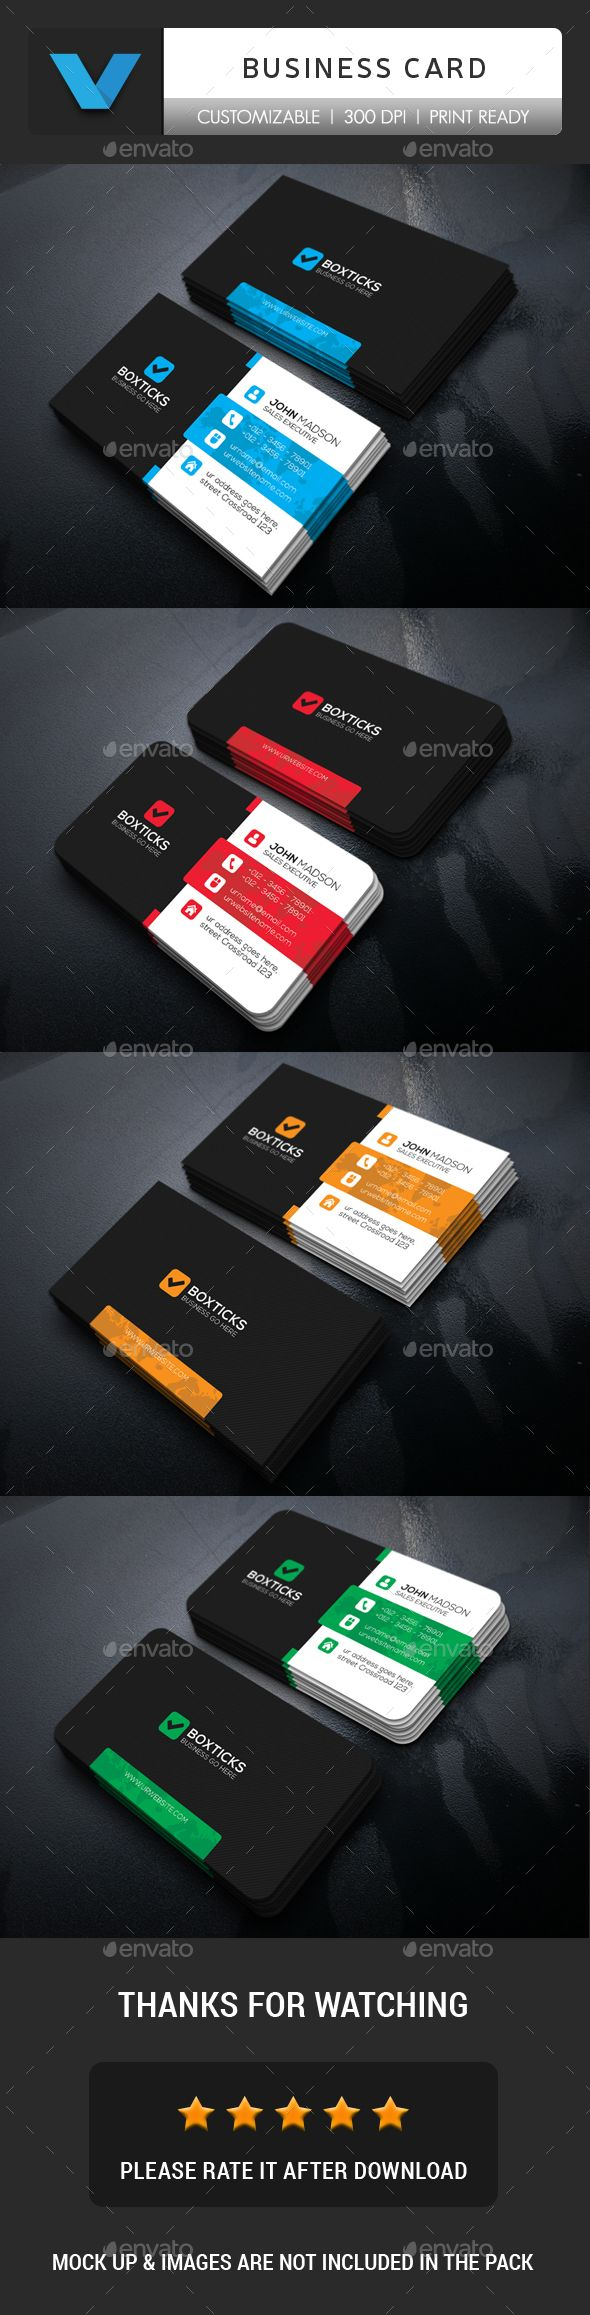 Office business card corporate business cards download here office business card corporate business cards download here httpsgraphicriver reheart Choice Image